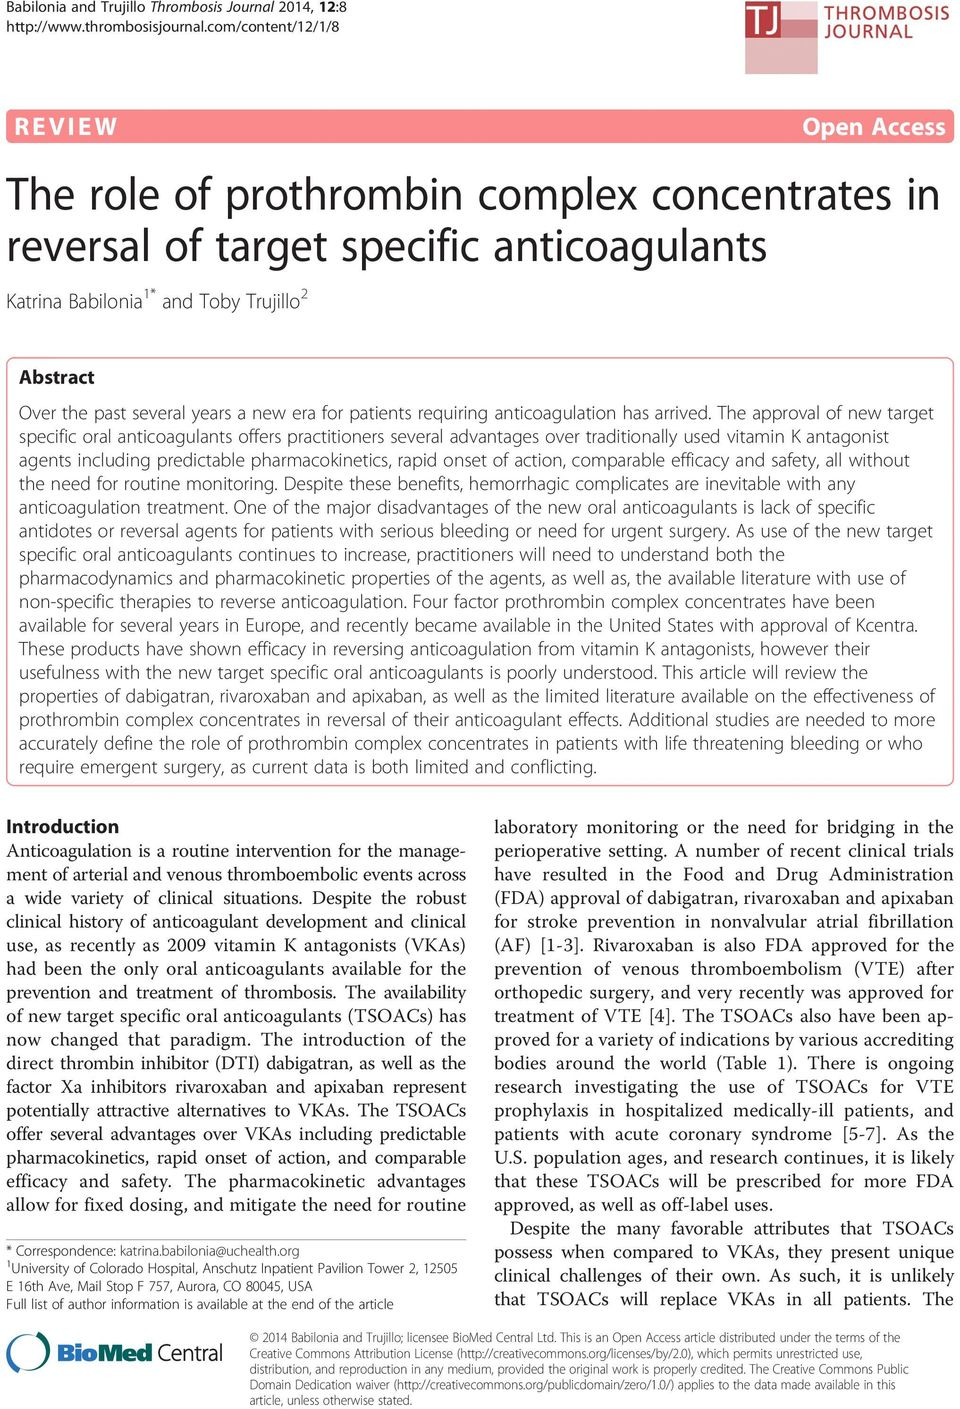 The approval of new target specific oral anticoagulants offers practitioners several advantages over traditionally used vitamin K antagonist agents including predictable pharmacokinetics, rapid onset